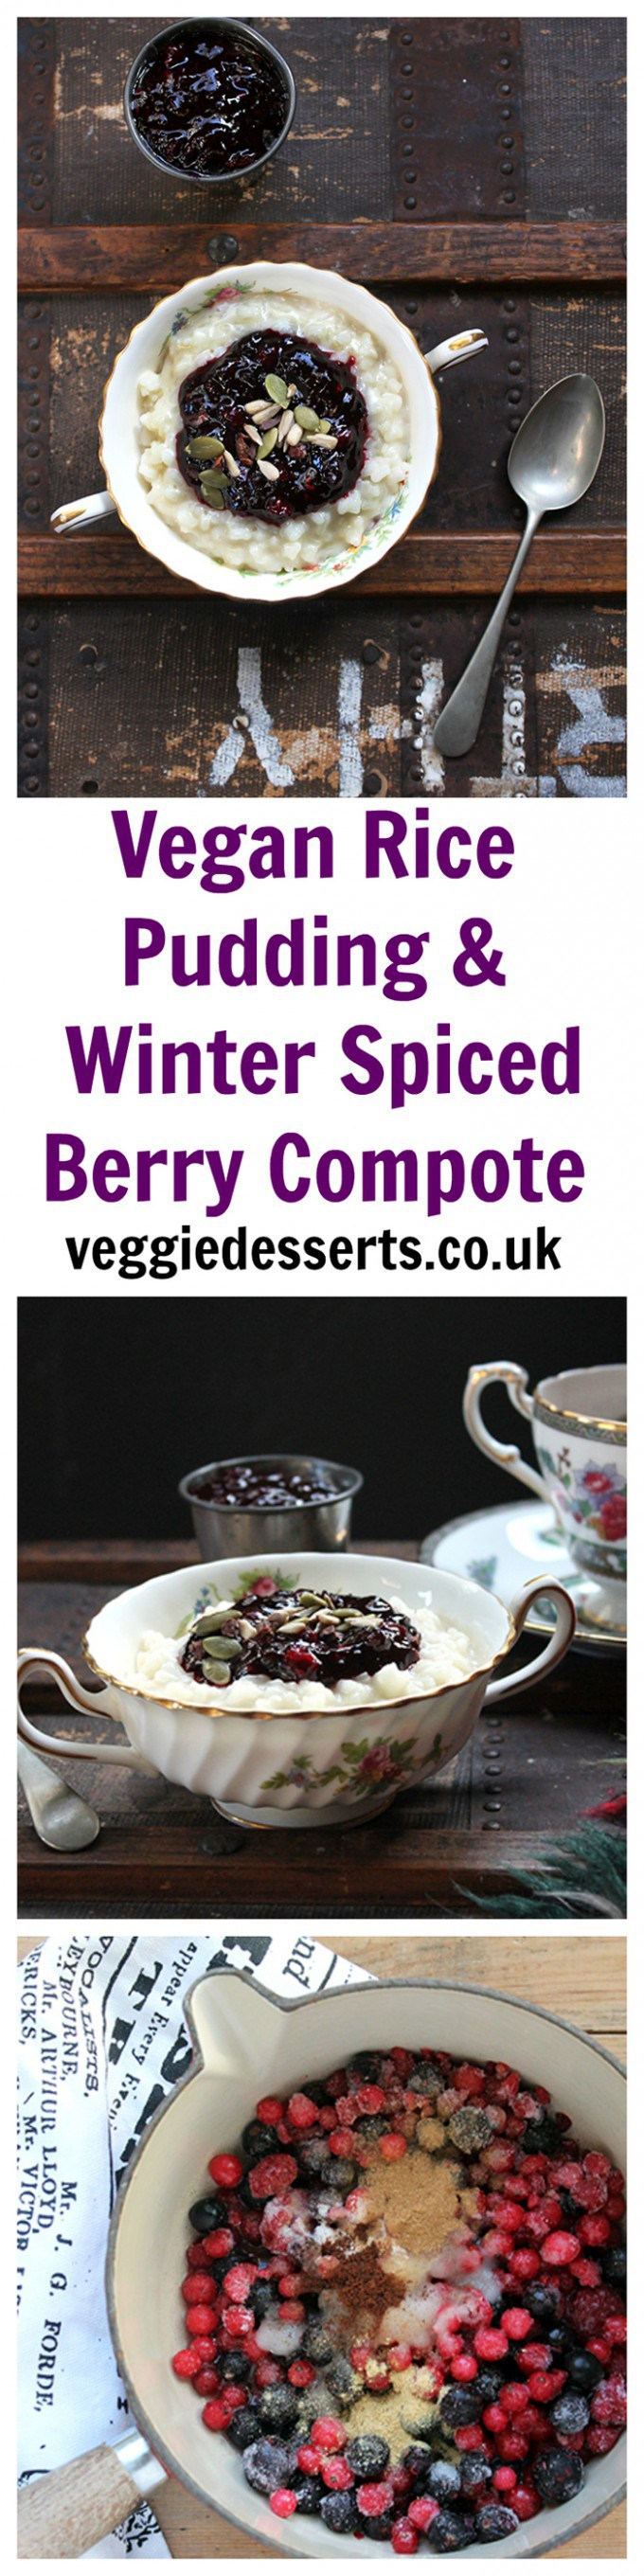 Vegan Rice Pudding with Winter Spiced Berry Compote   Veggie Desserts Blog